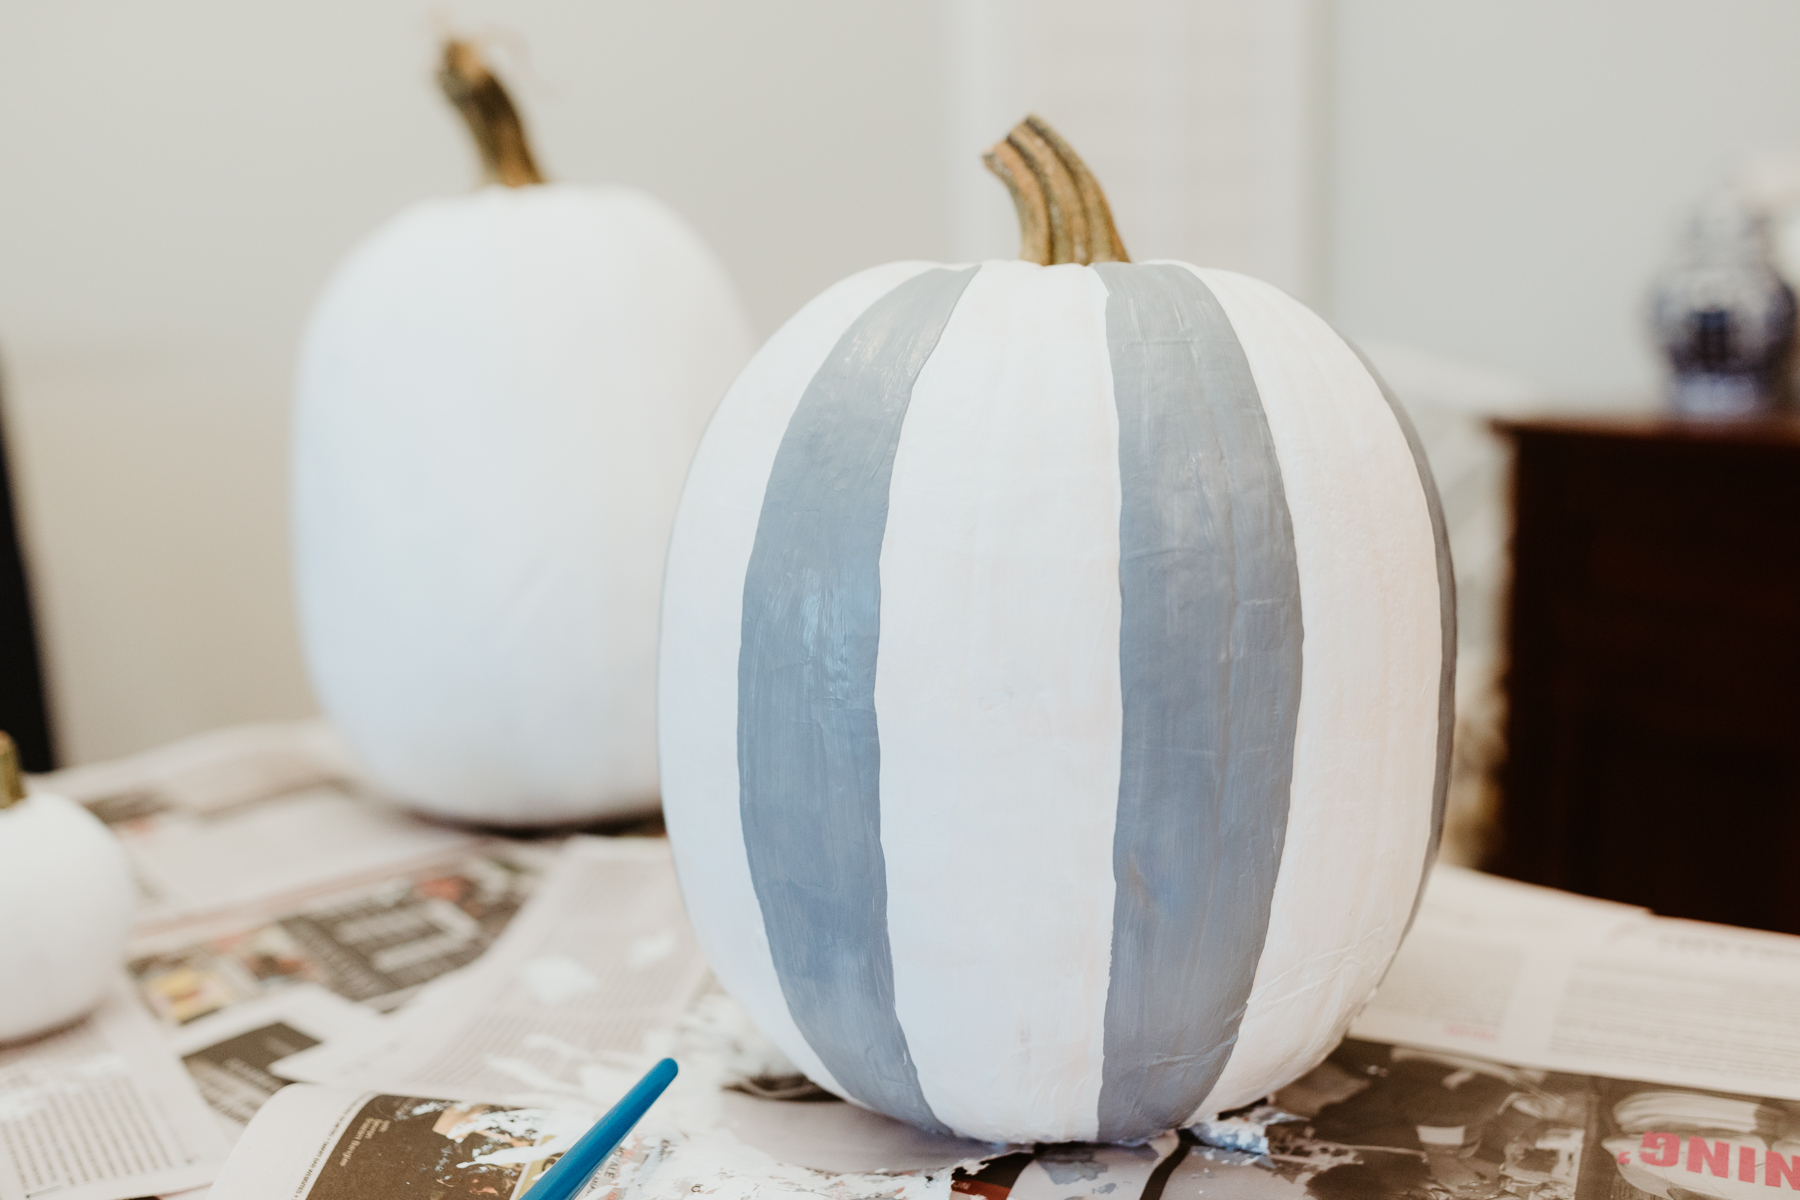 Buffalo plaid pumpkin: On a paper plate, mix the white and black paint to create your desired shade of gray. Then paint vertical stripes following the natural lines of the pumpkin. These lines aren't spaced out perfectly, so don't think of them as borders. Simply use them as guides!